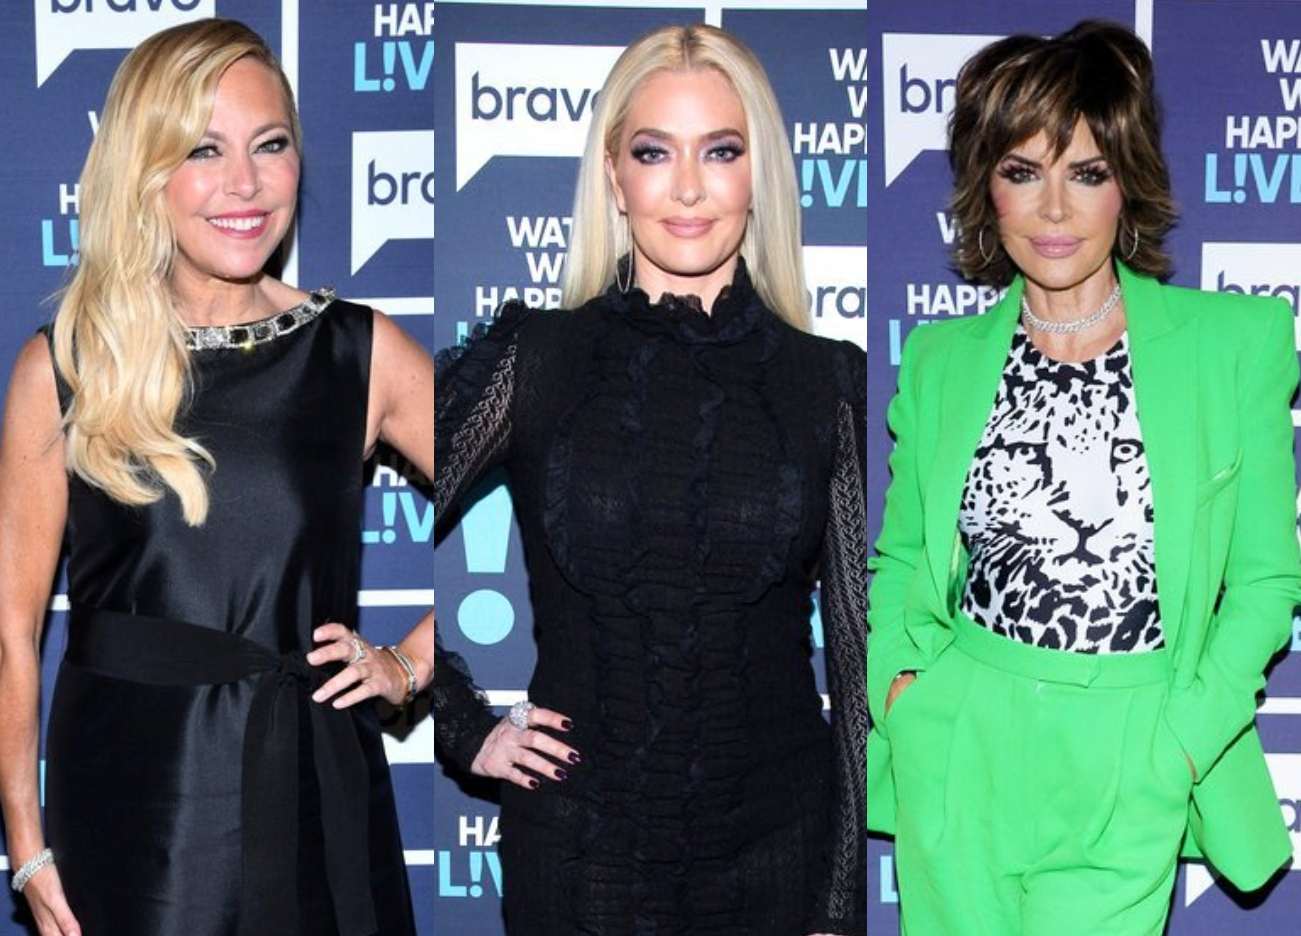 'RHOBH' Sutton Stracke Offered Erika Jayne Loan Amid Divorce From Thomas Girardi as Lisa Rinna Reveals Erika Refused to Say Where She Got Money to Leave Thomas